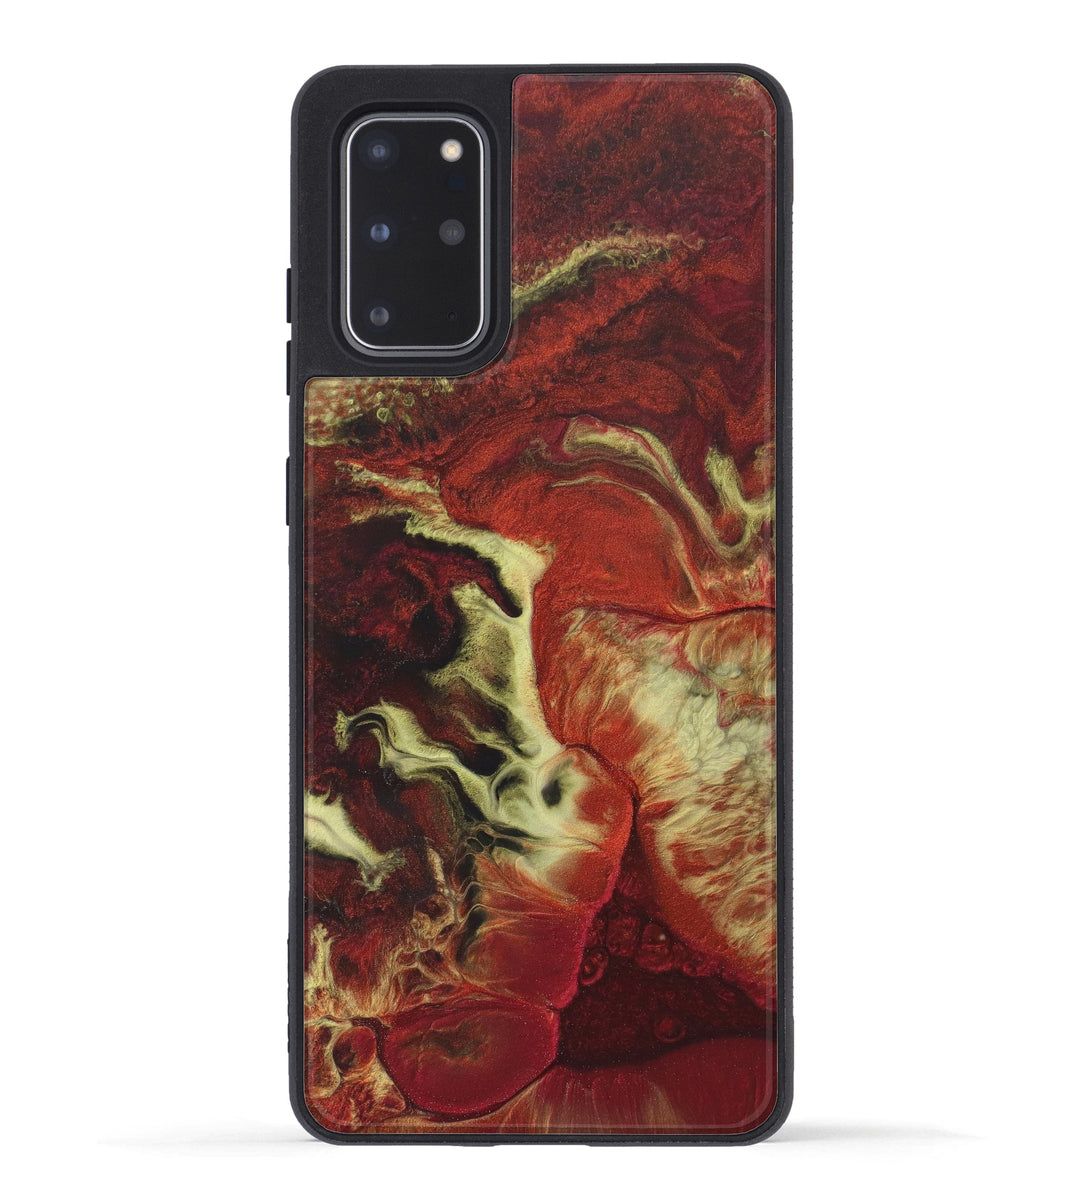 Galaxy S20 Plus ResinArt Phone Case - Phillida (Dark Red, 347949)